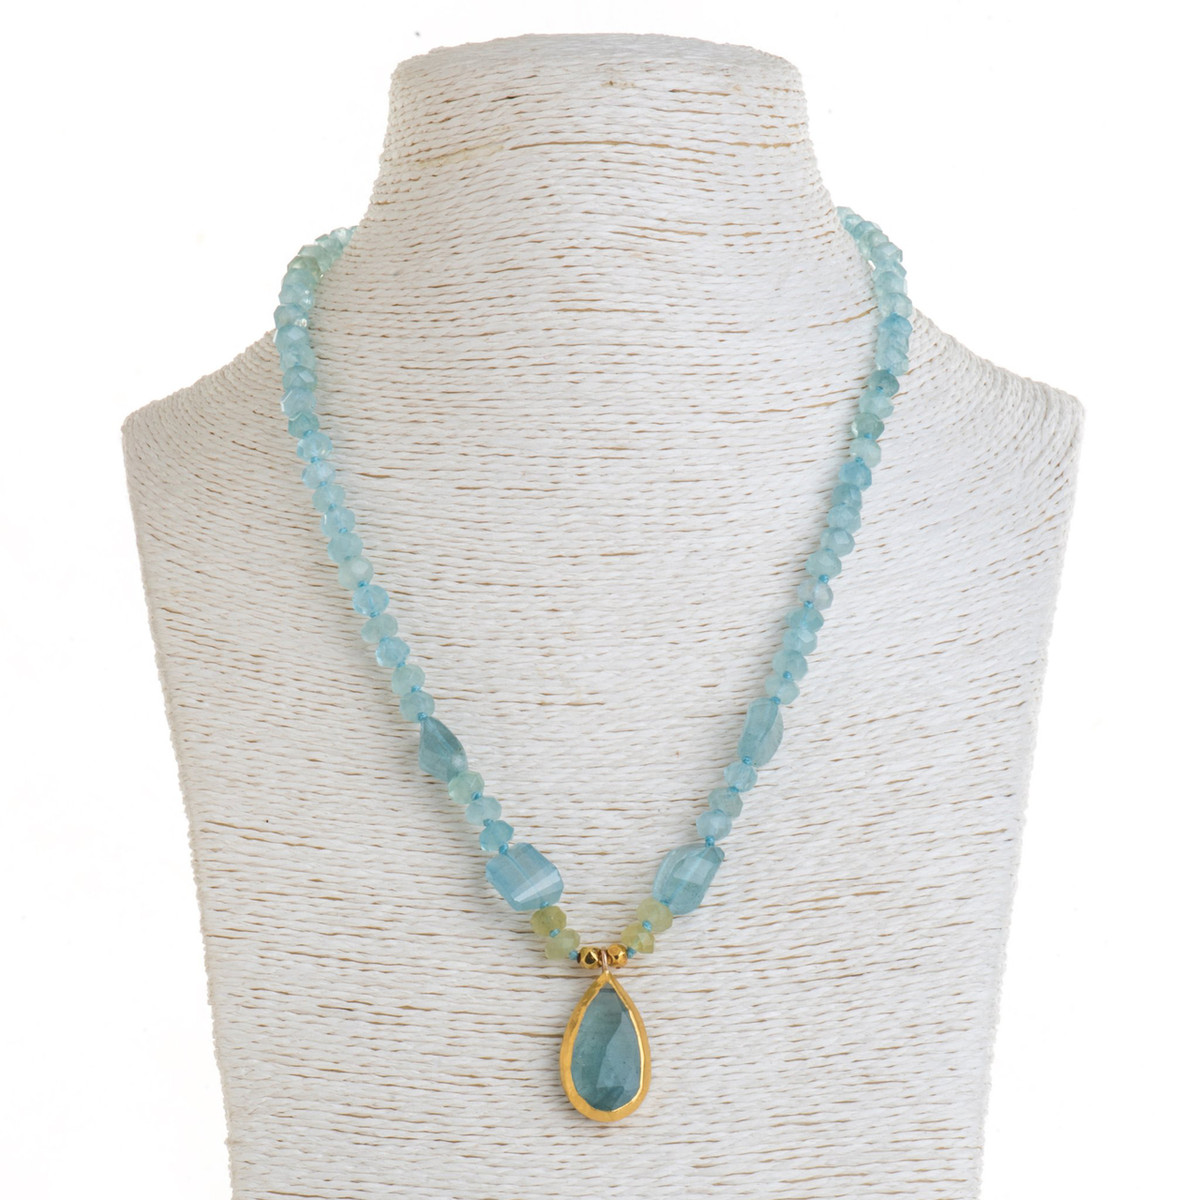 Aqua Sensation Necklace by Nava Zahavi - New Arrival